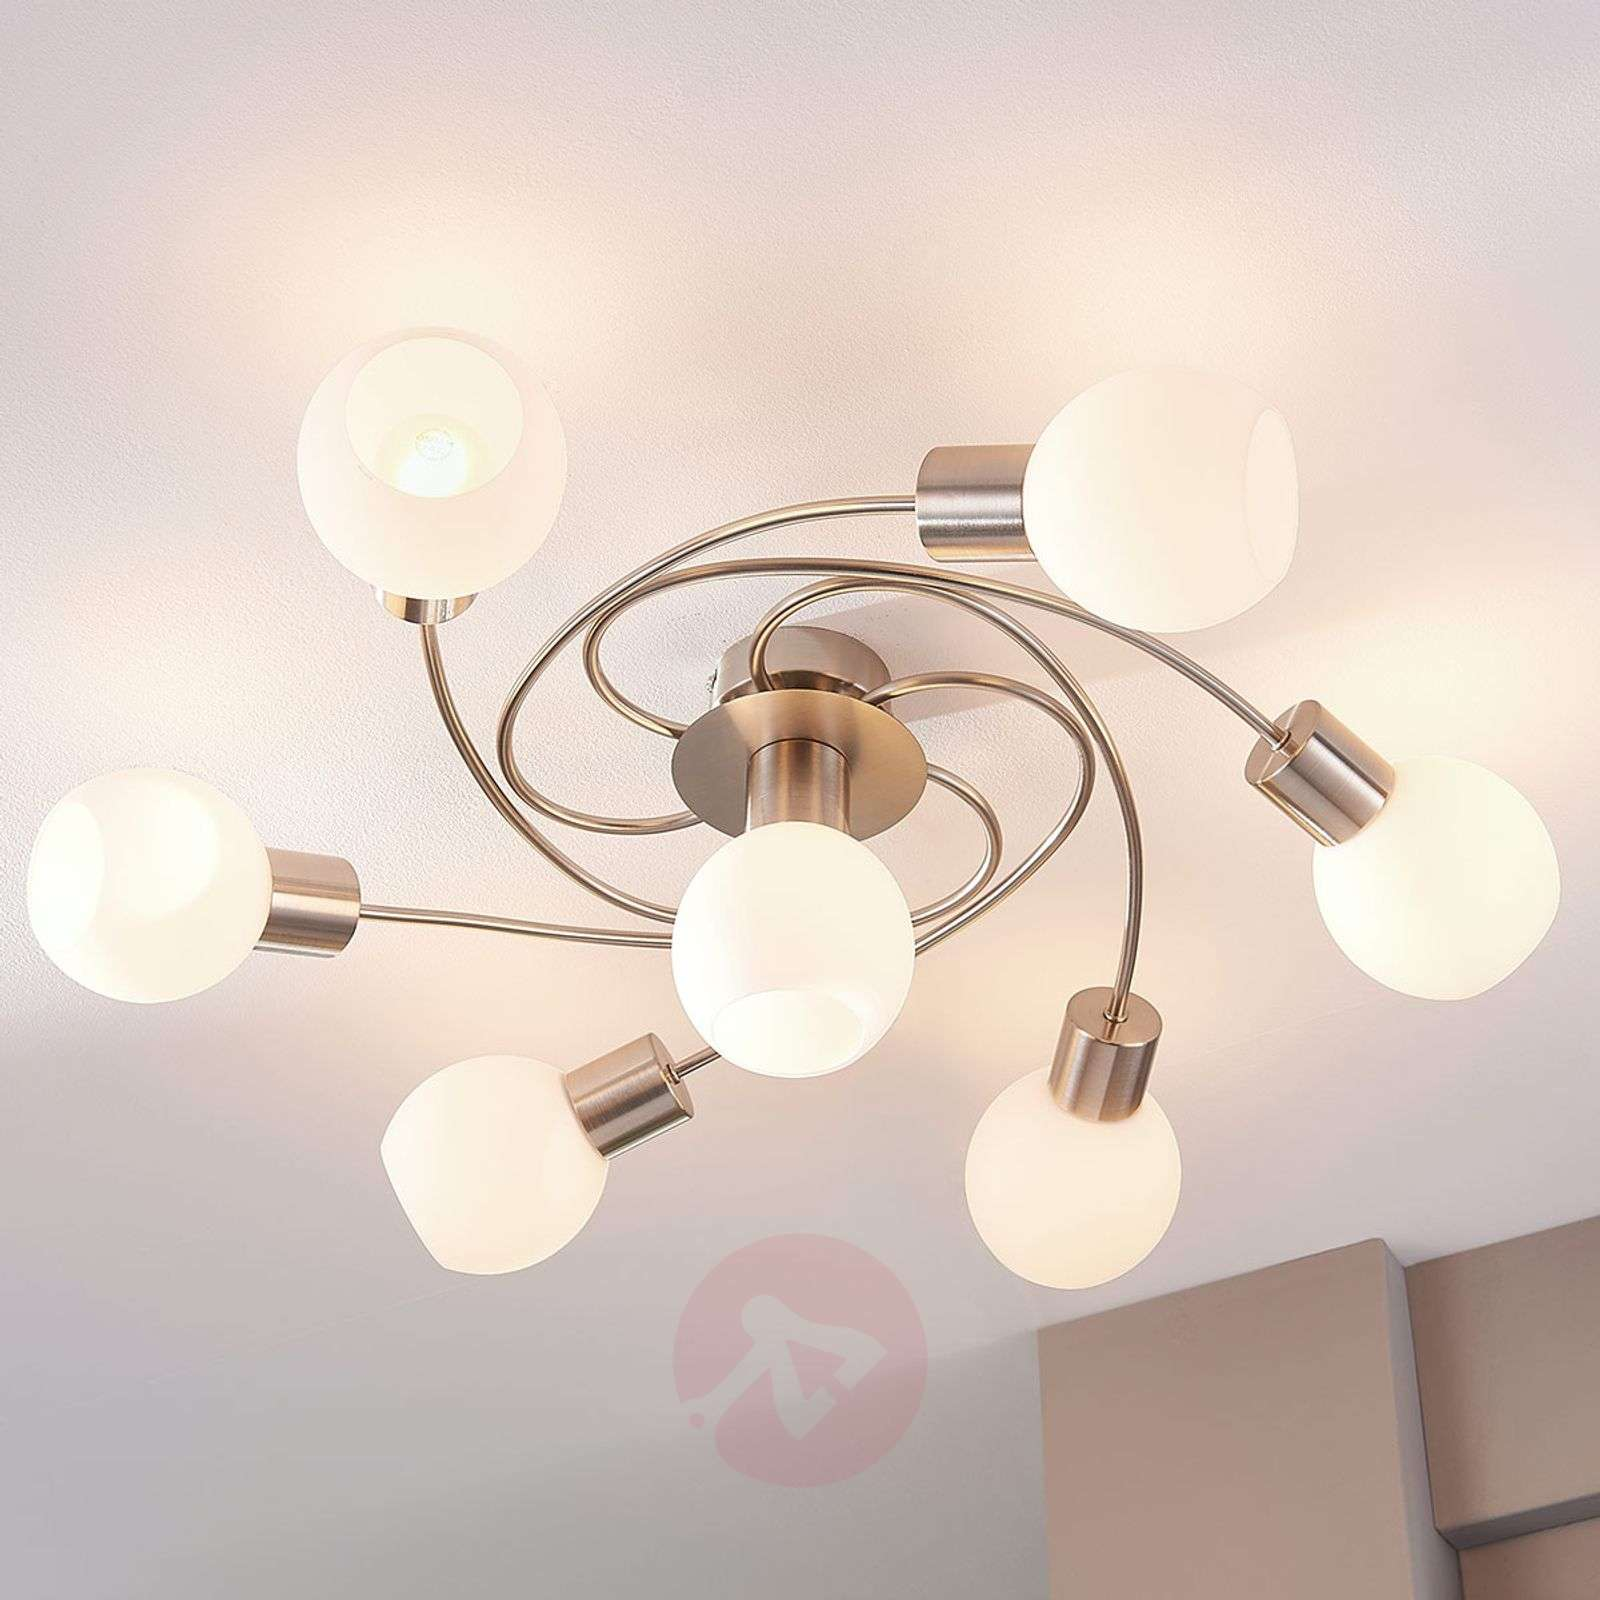 Harmonious Ciala LED ceiling light-9621010-02